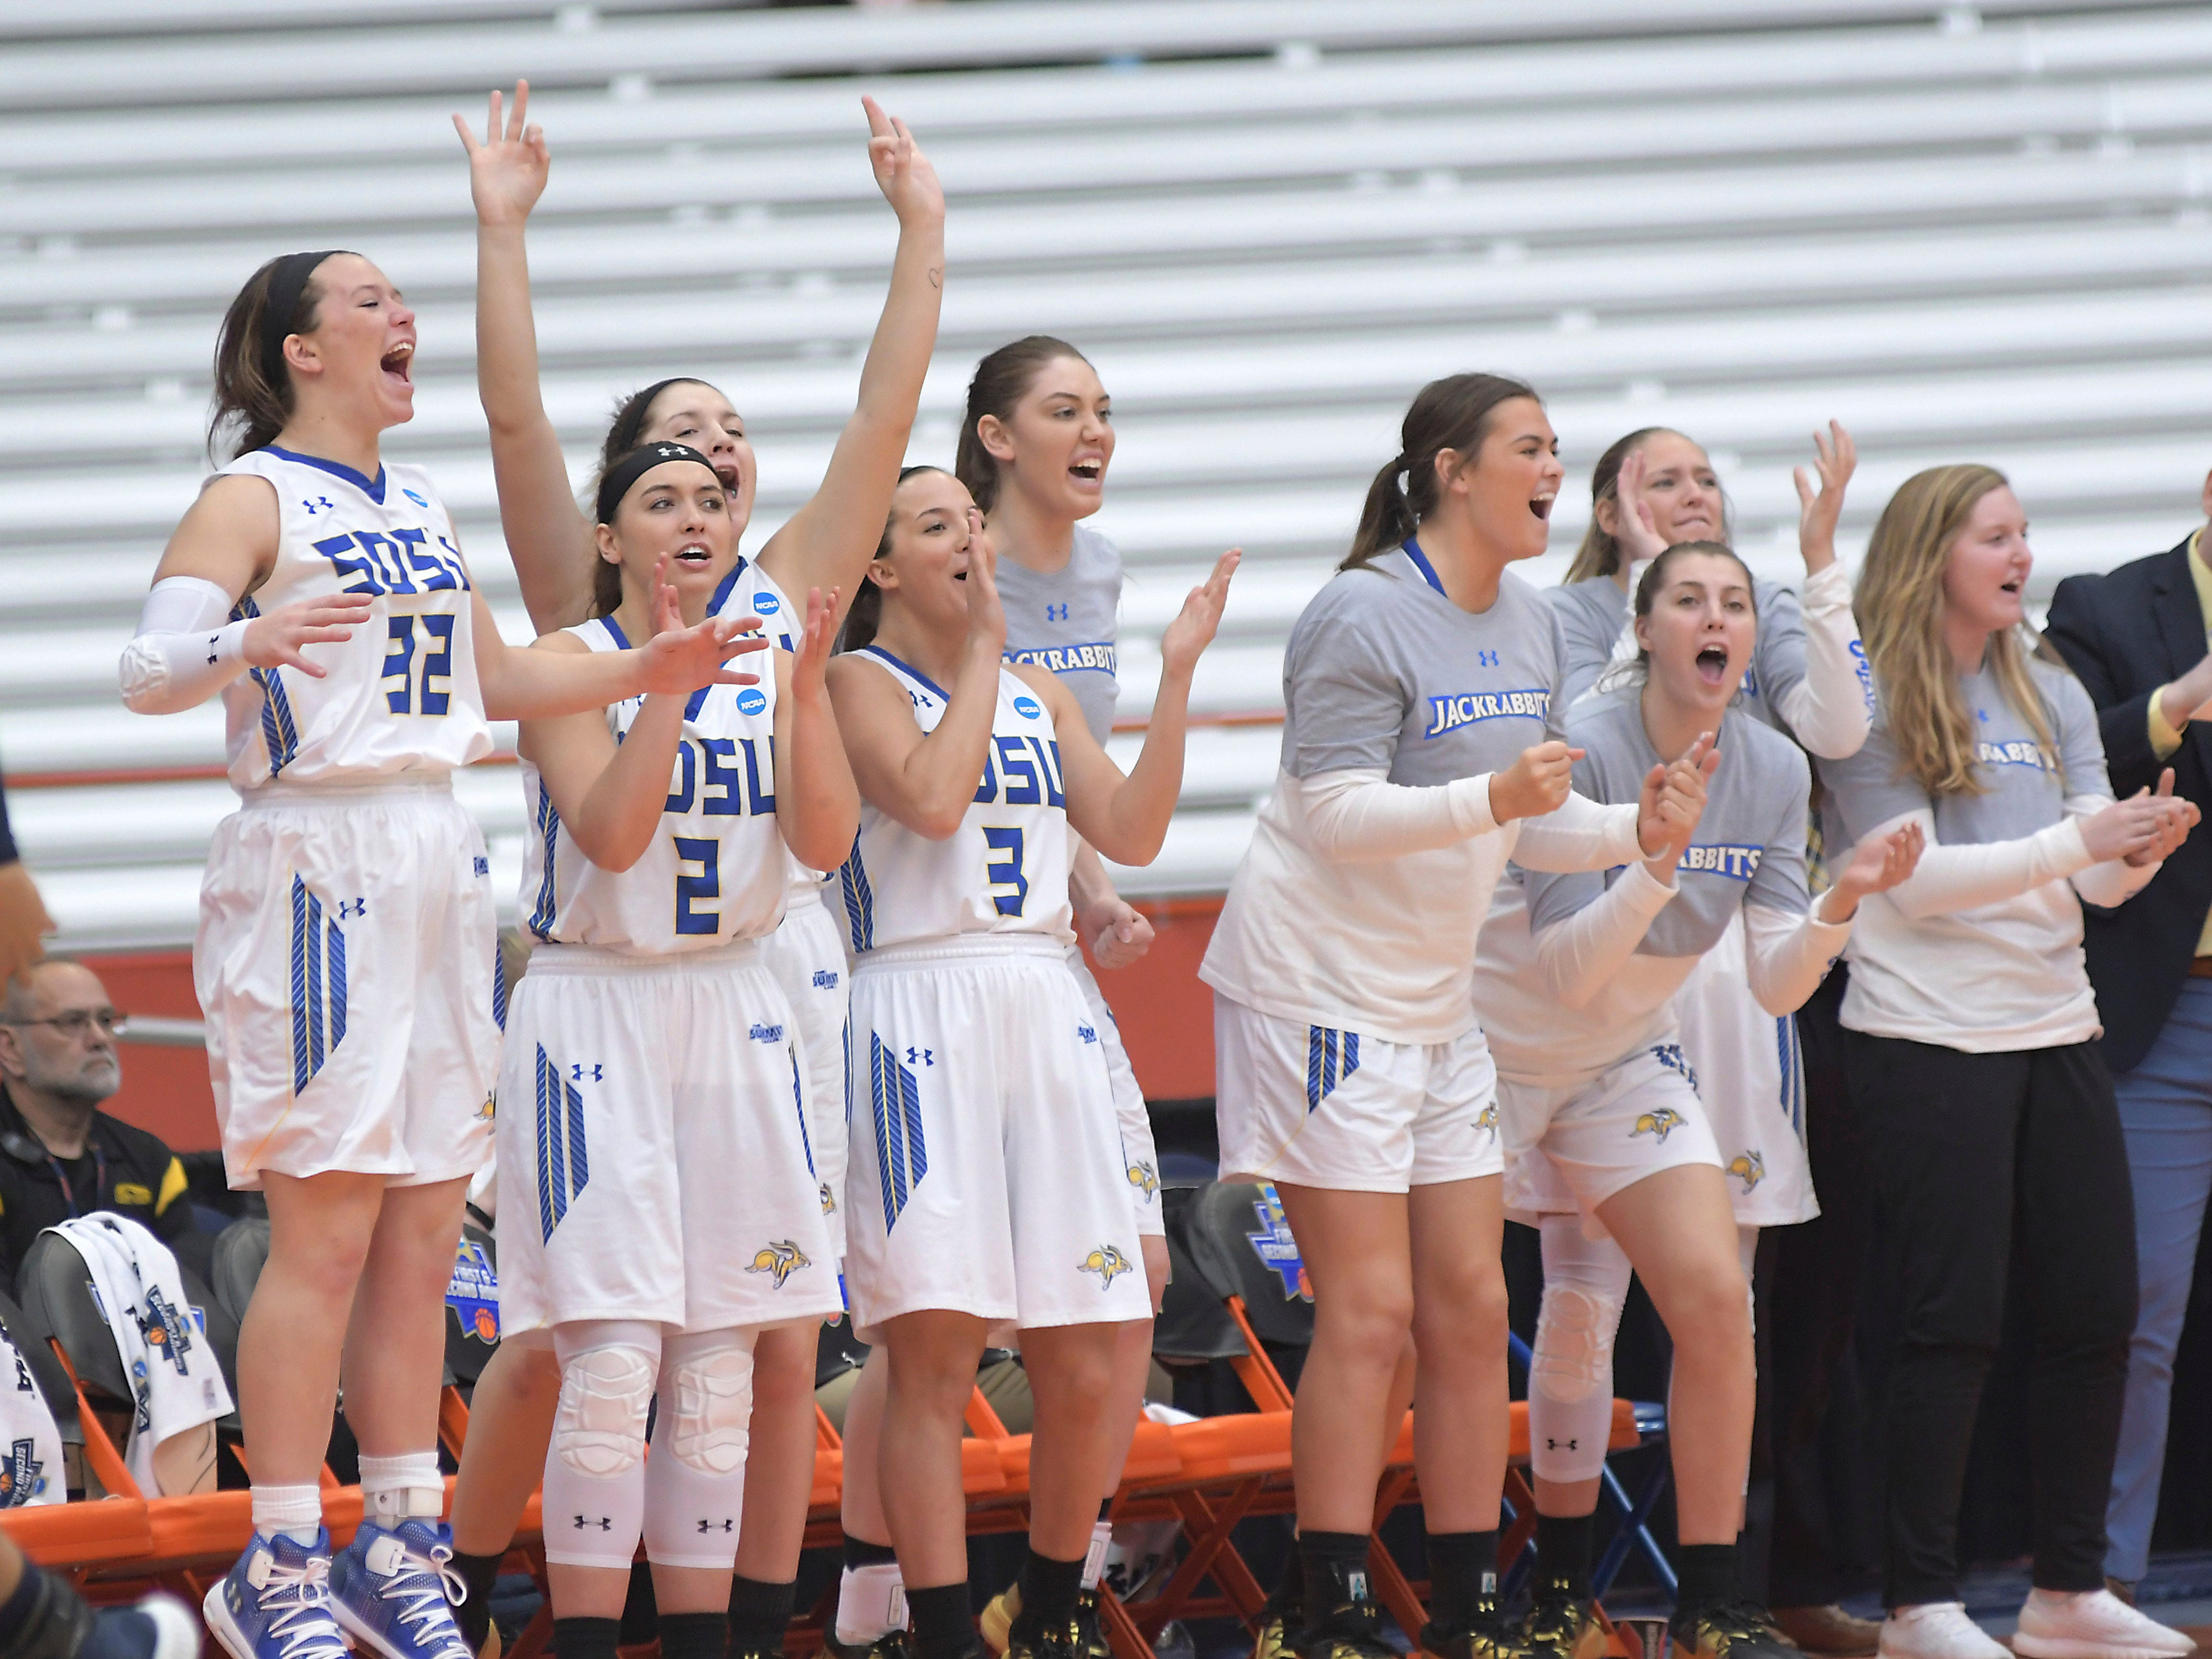 South Dakota State players cheer from the sideline during a first-round game against Quinnipiac in the NCAA women's college basketball tournament in Syracuse, N.Y., Saturday, March 23, 2019. (AP Photo/Heather Ainsworth)